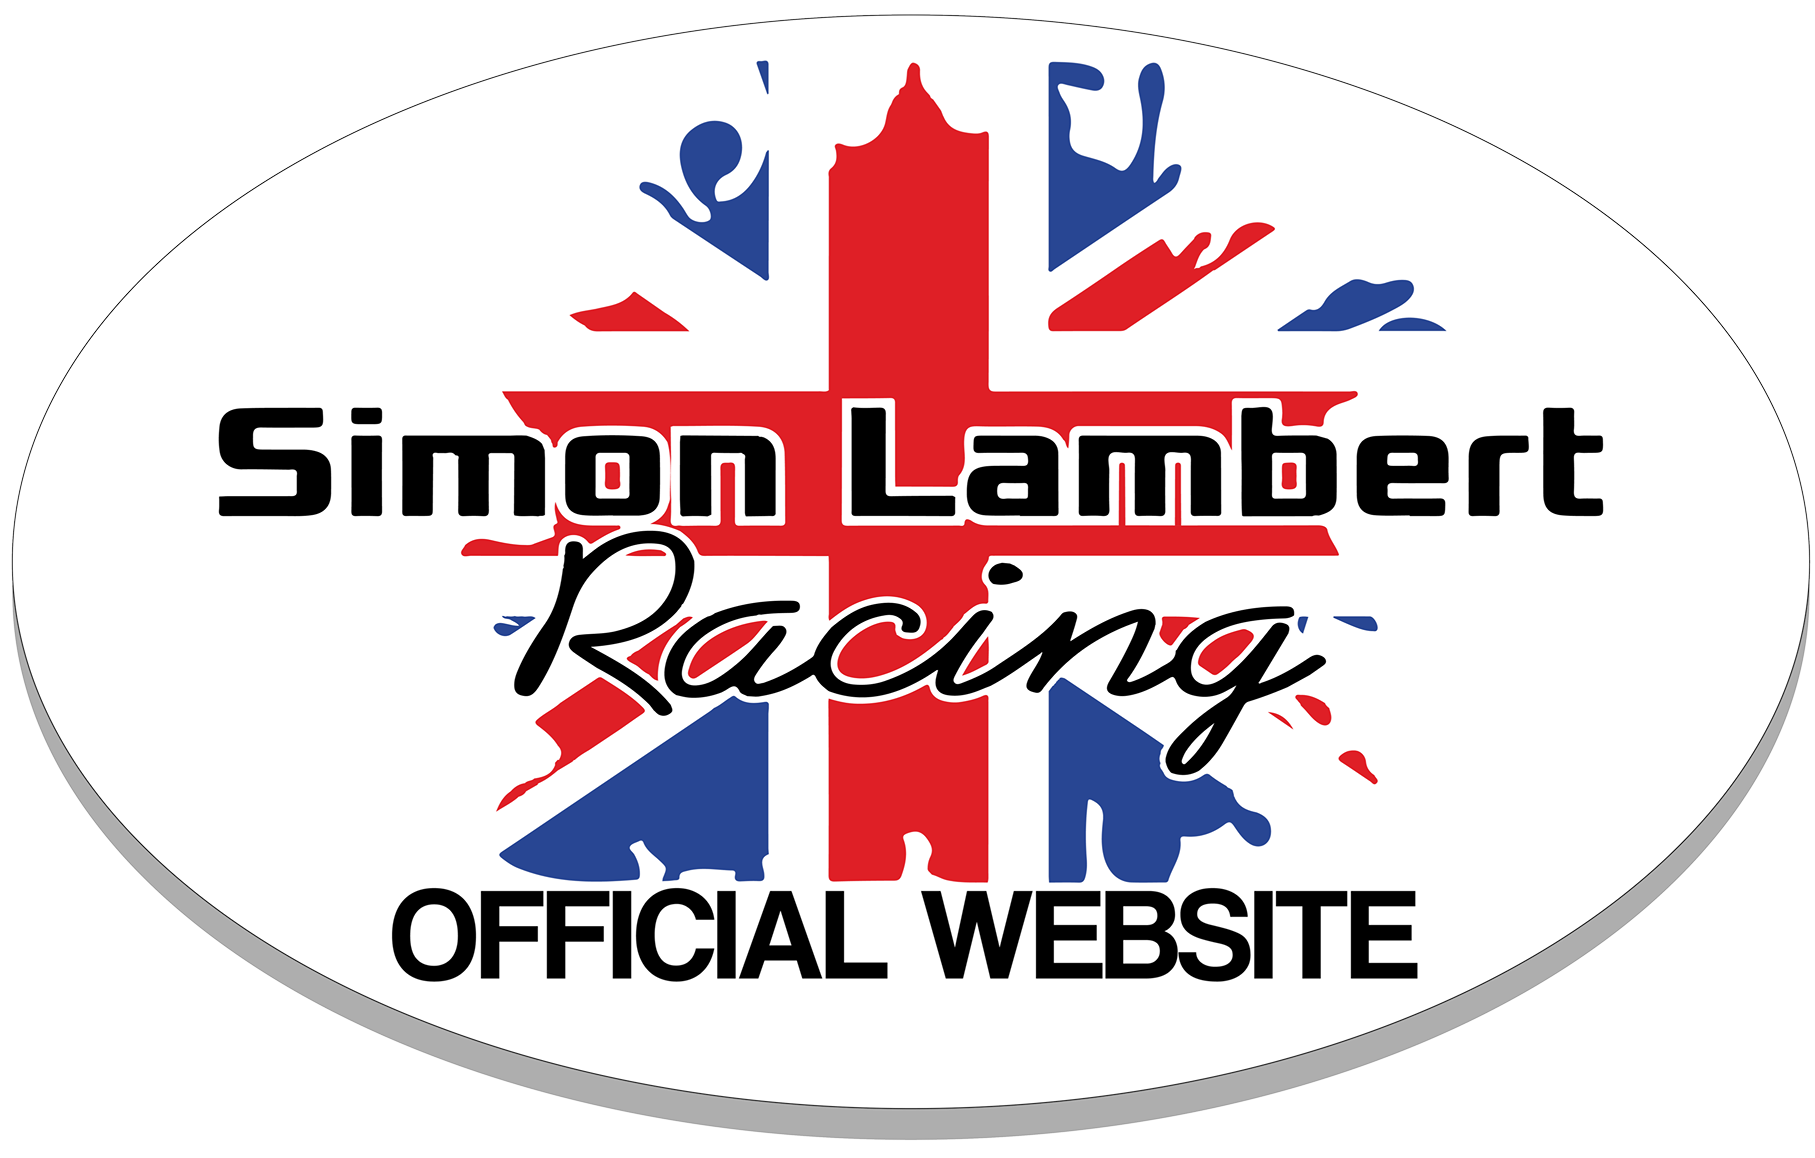 Simon Lambert Racing: OFFICIAL WEBSITE